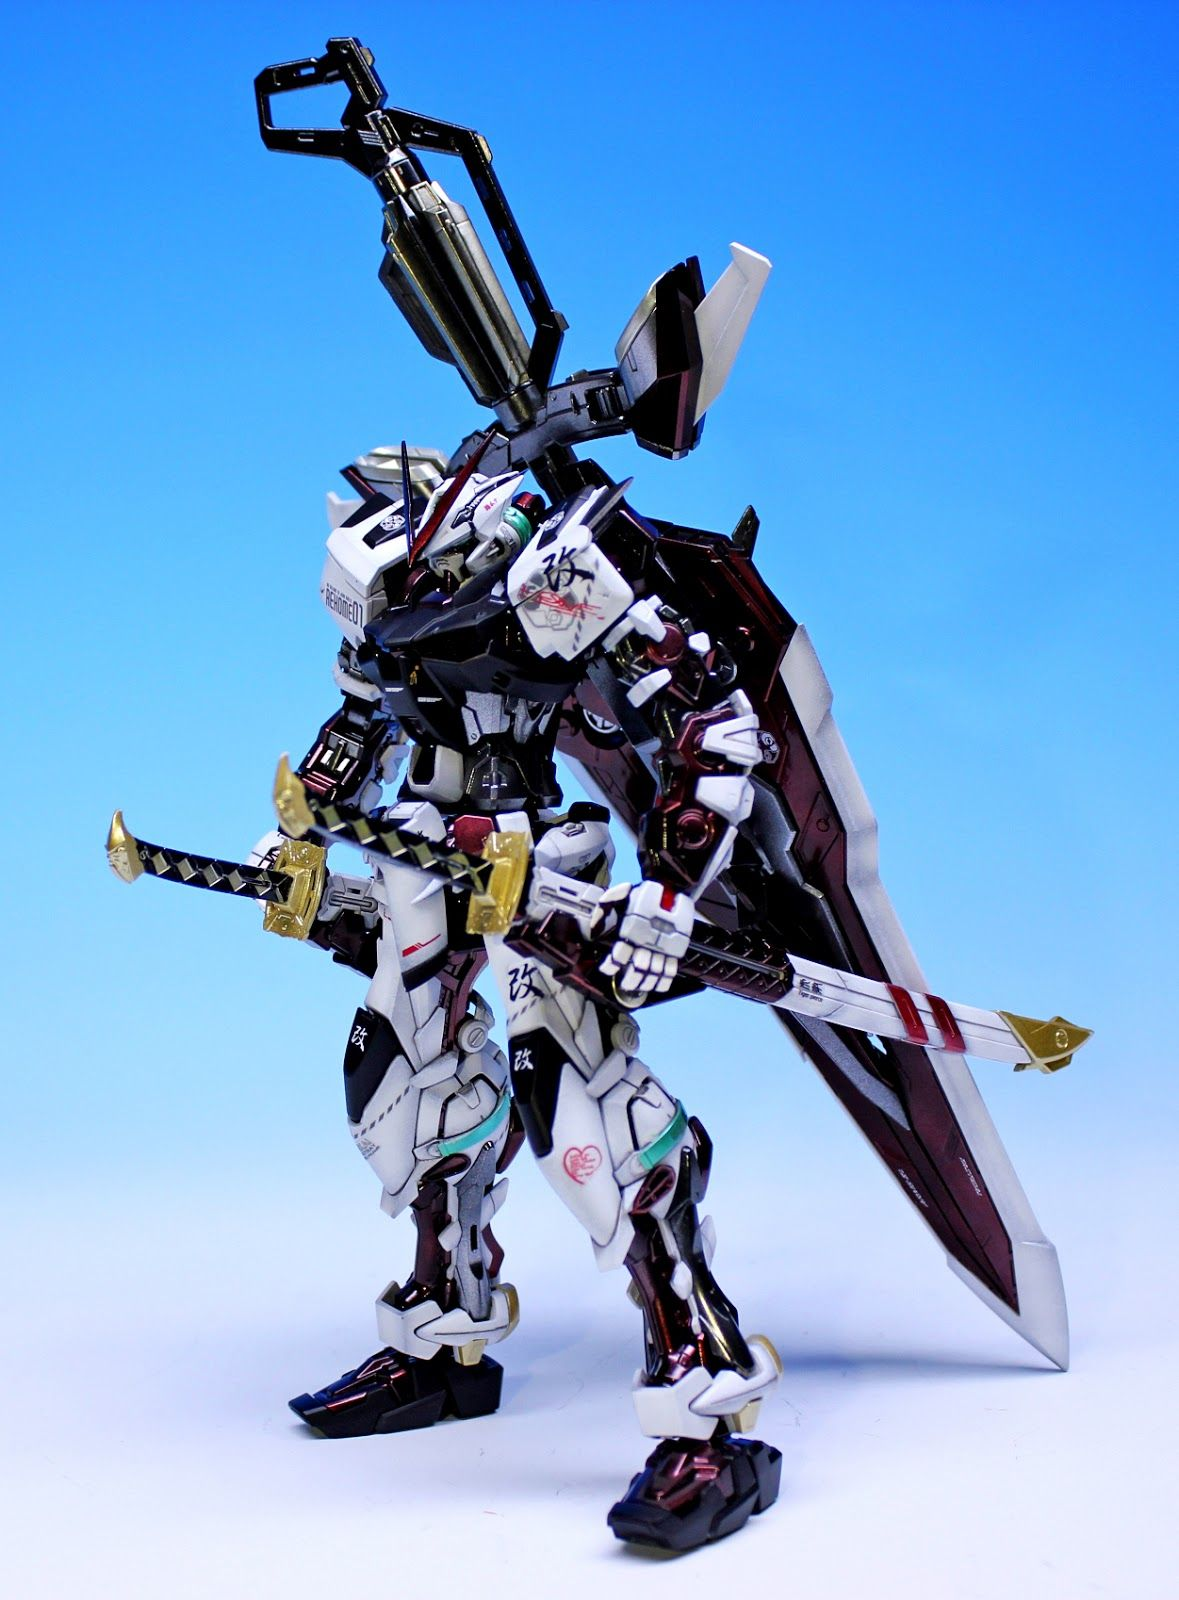 MG 1/100 Astray Red Frame - Painted Build